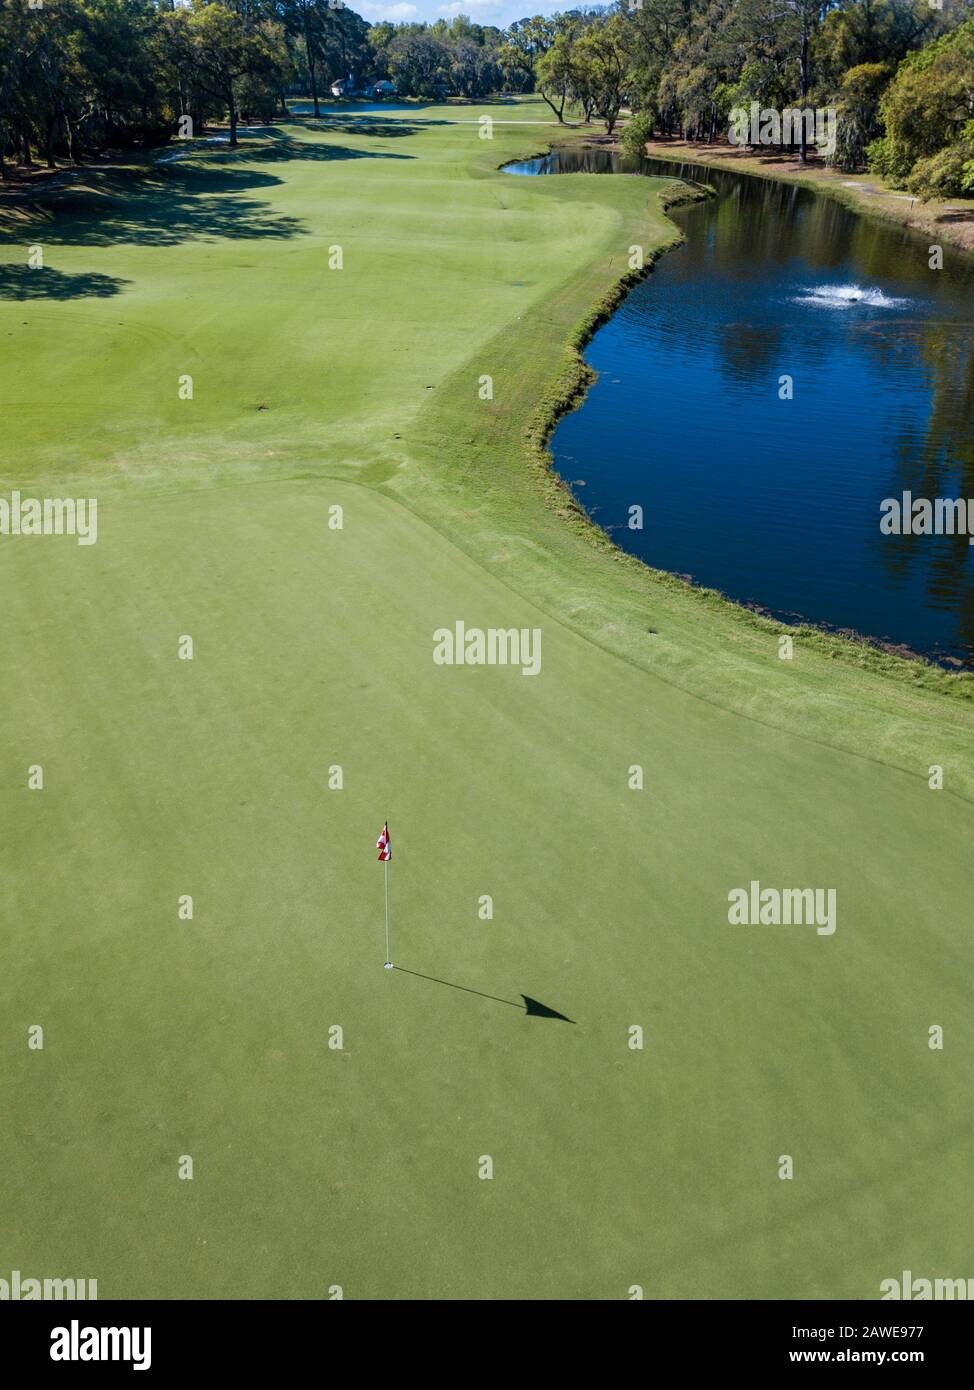 Low Aerial Shot Of Pin On A Golf Course With Fairway In The Background Stock Photo Alamy